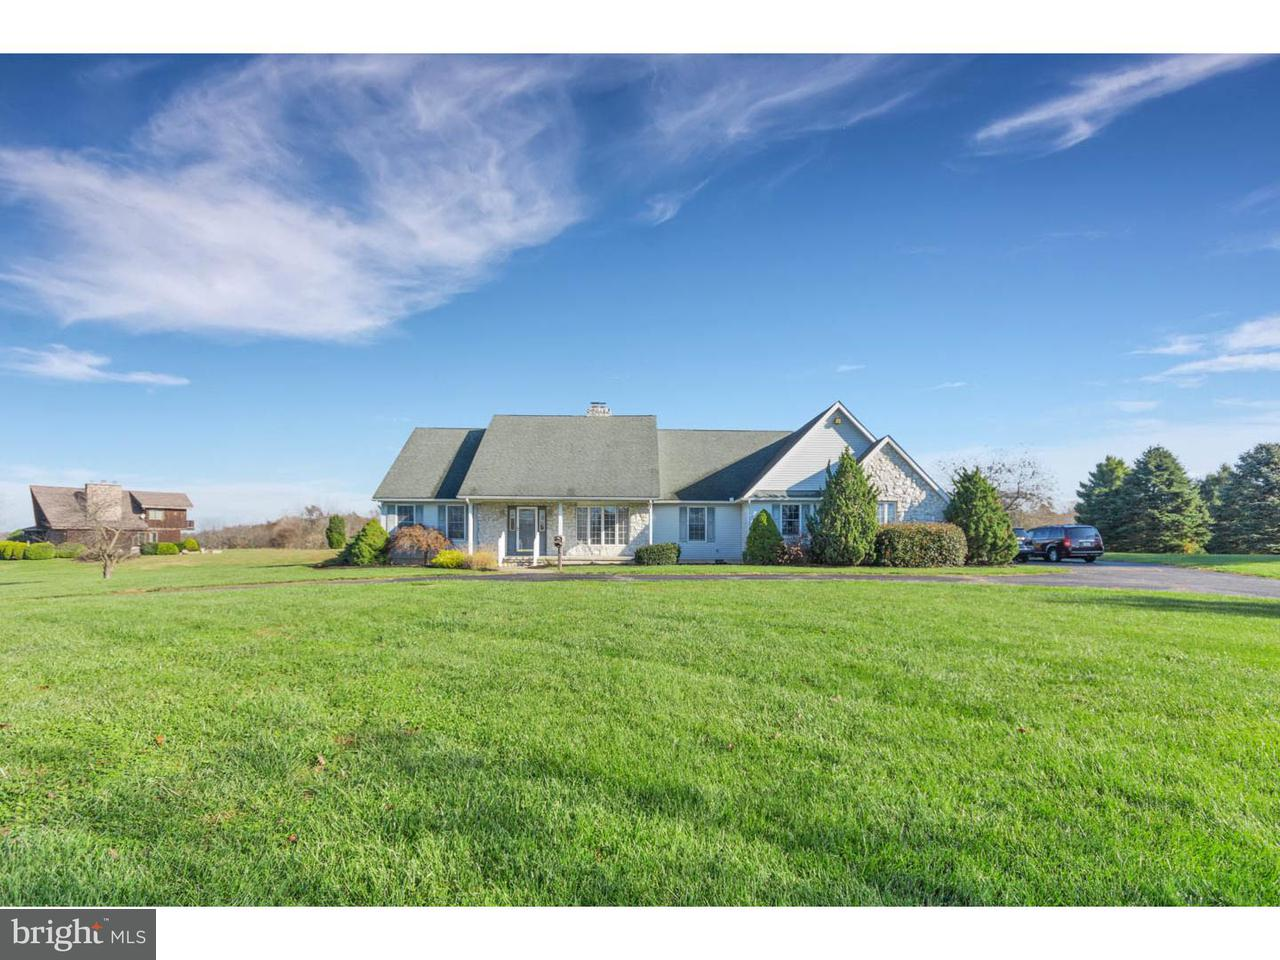 Single Family Home for Sale at 242 WOODSTOWN DARETOWN Road Pilesgrove, New Jersey 08098 United States